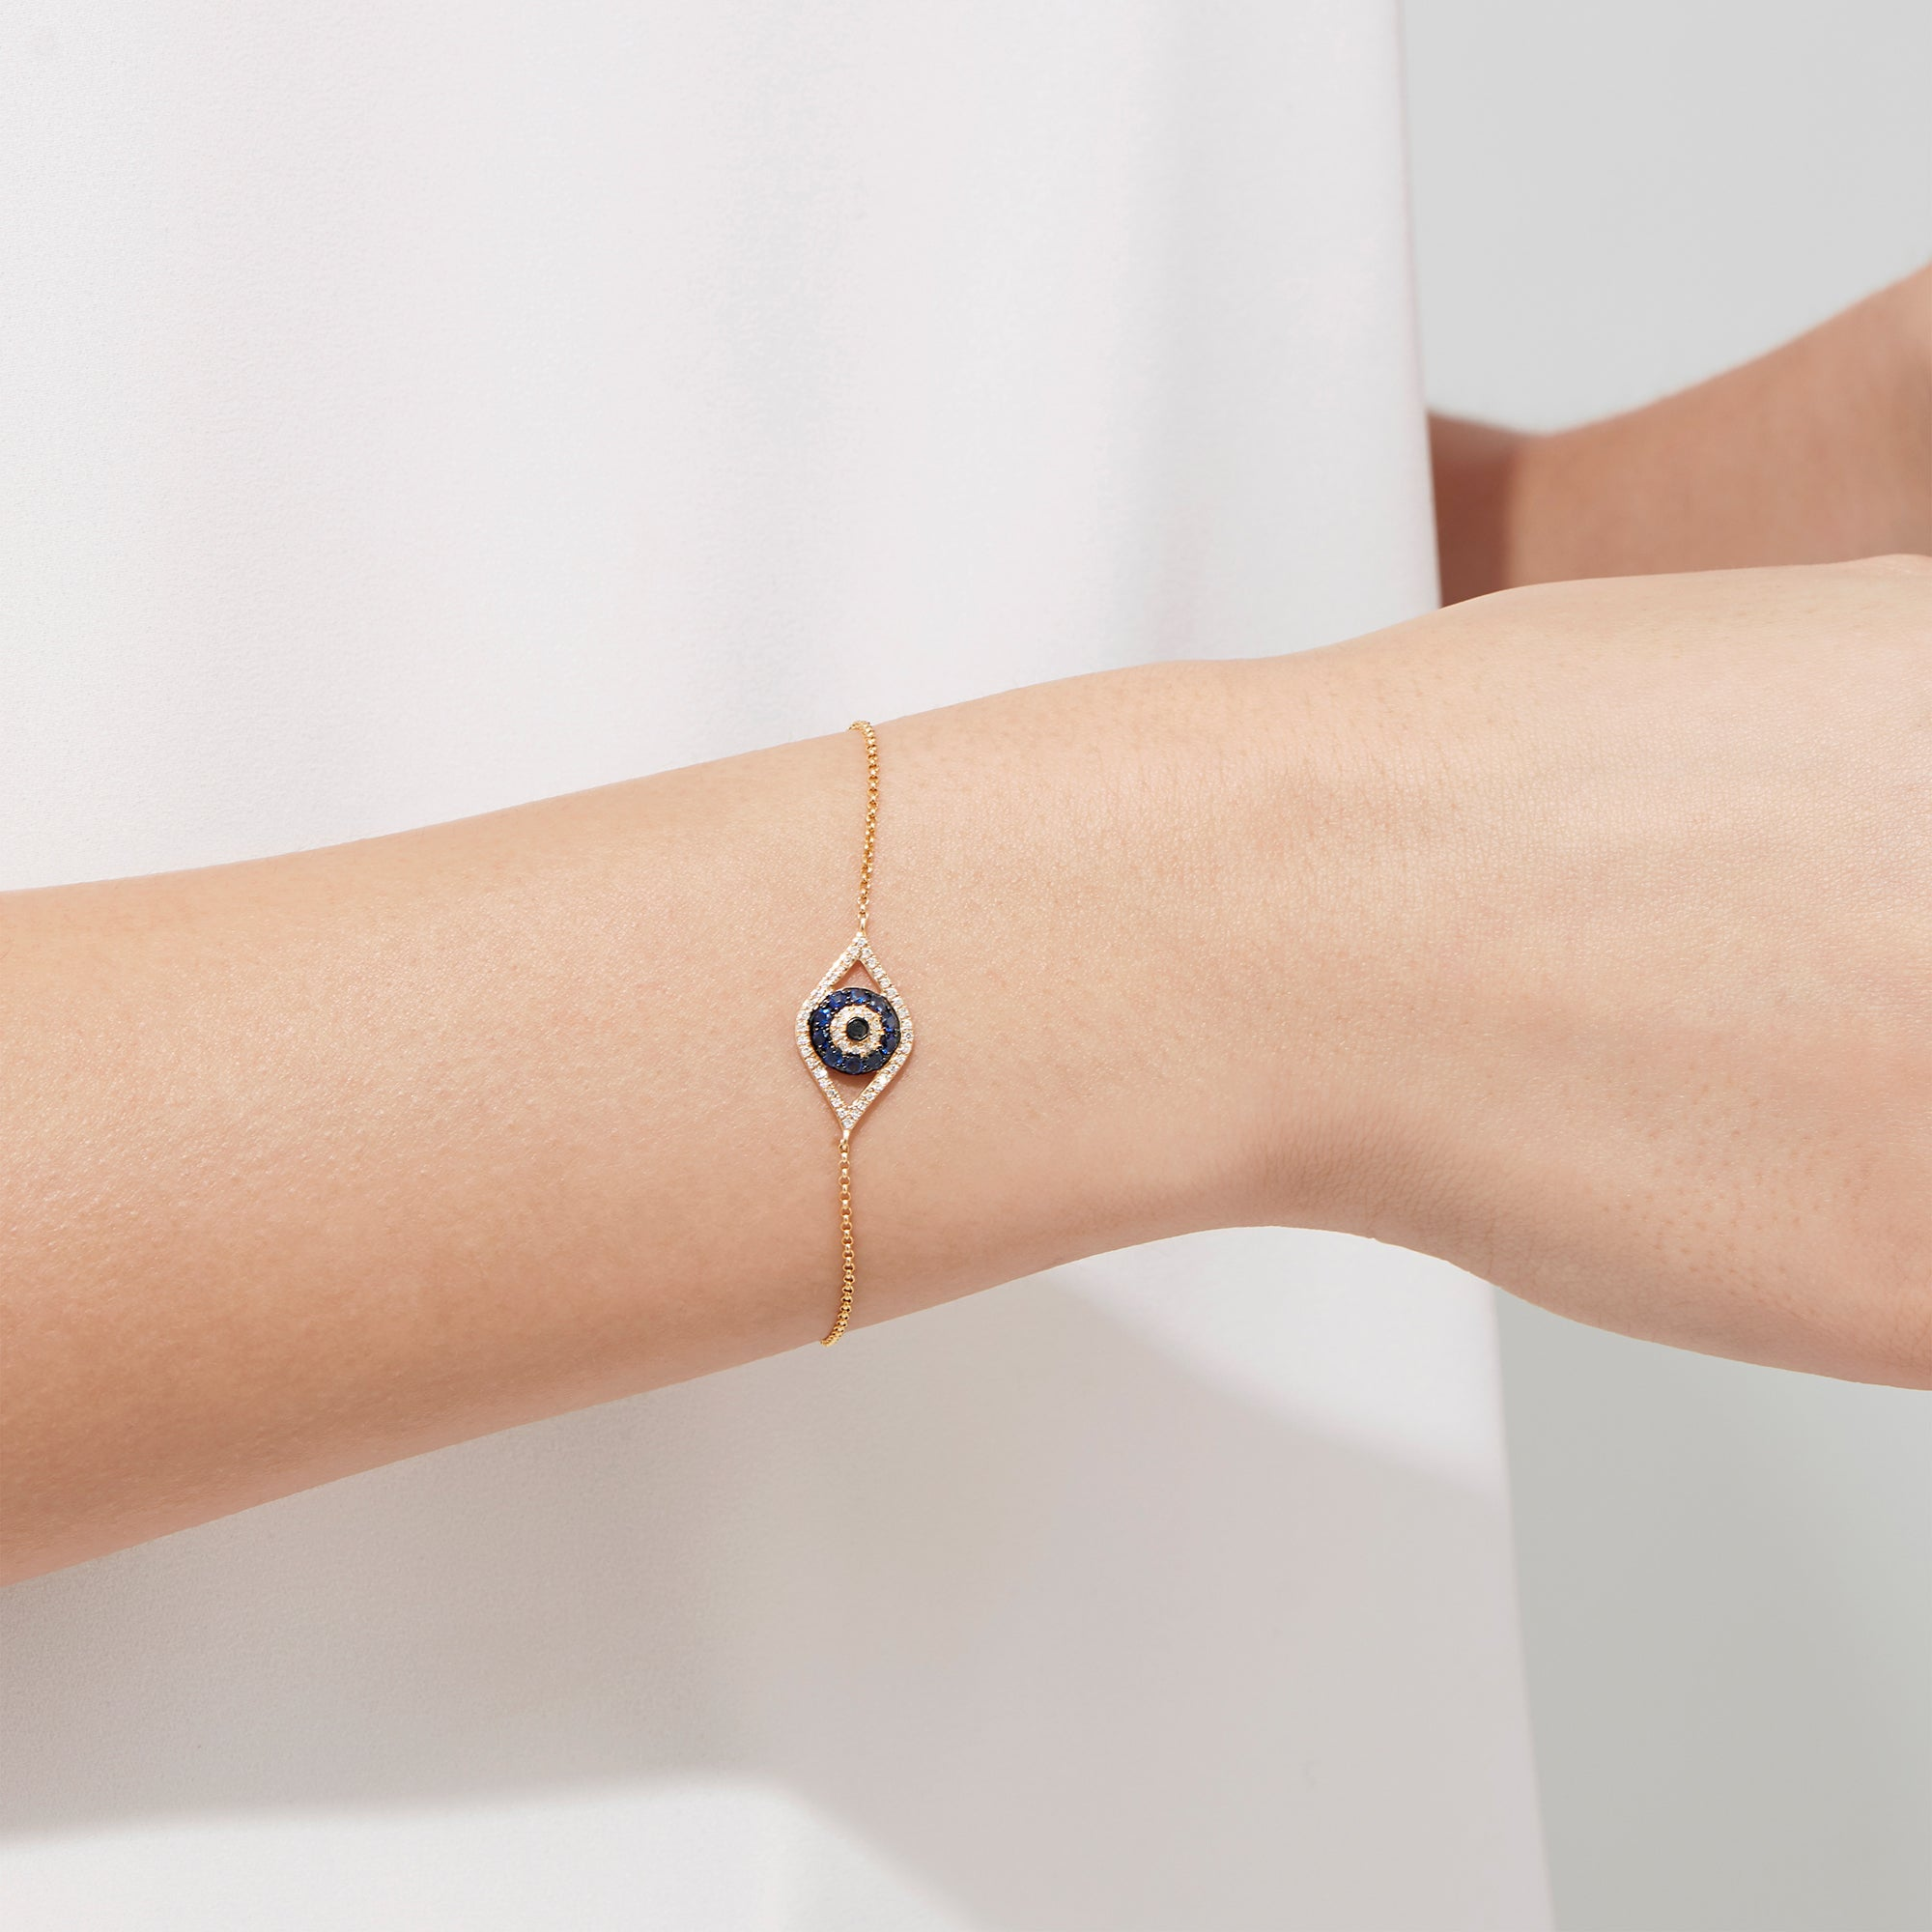 Effy Novelty 14K Yellow Gold Sapphire & Diamond Evil Eye Bracelet, 0.43 TCW